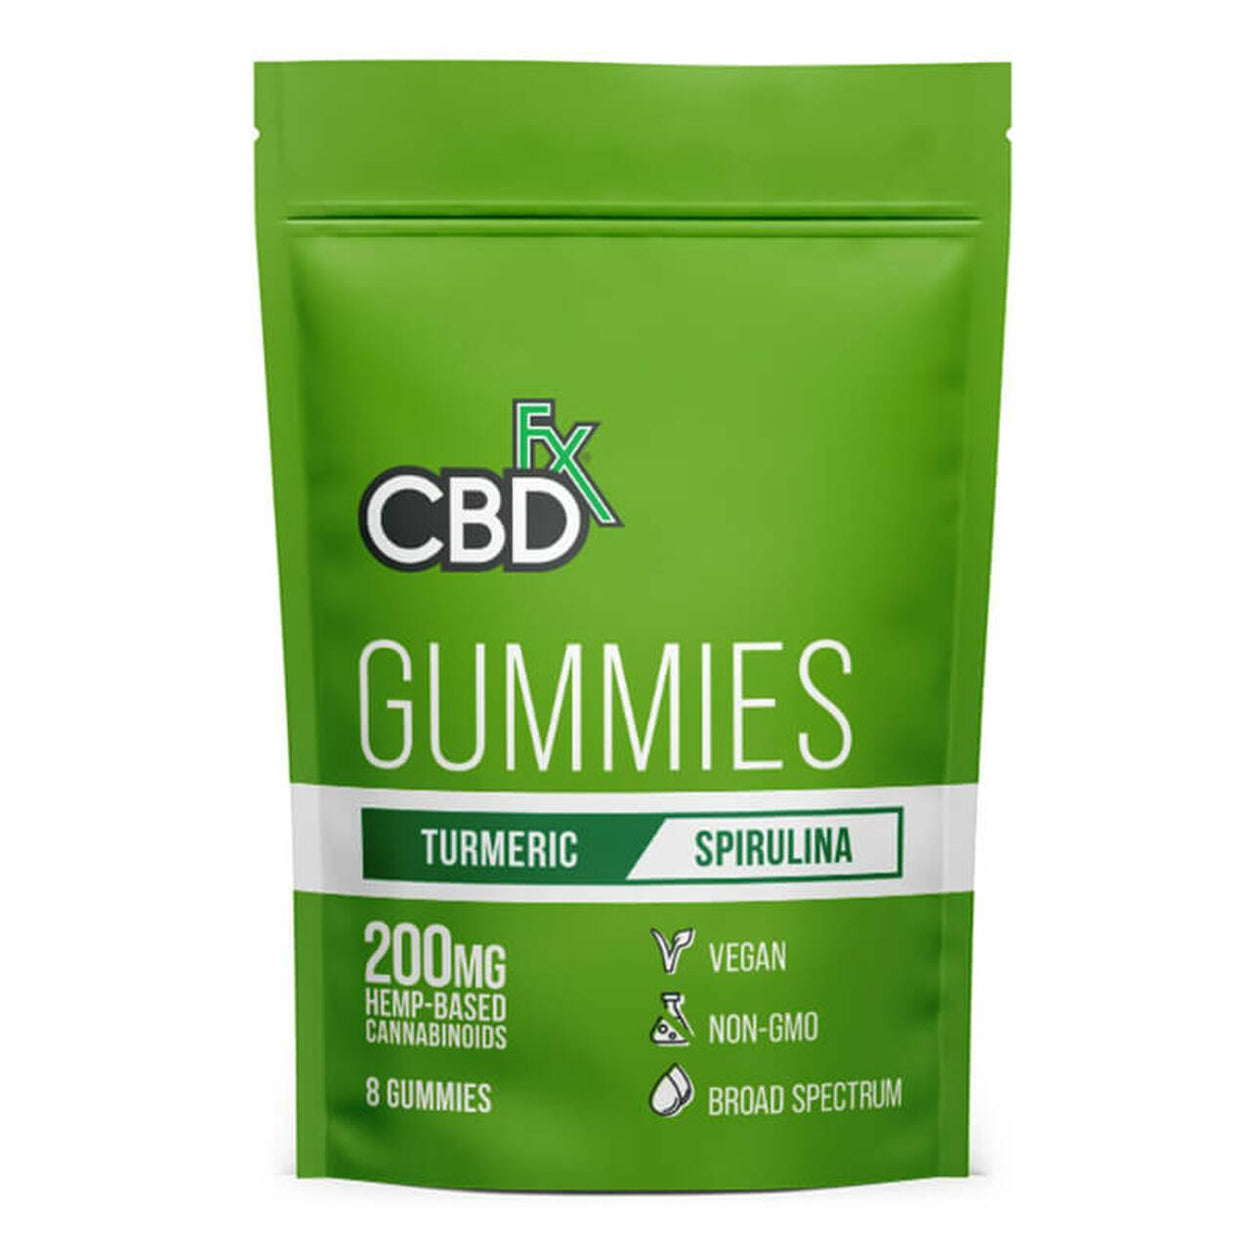 CBDfx - CBD Edible - Broad Spectrum Turmeric & Spirulina Gummies - 25mg - 1500mg - Edibles - 60ct Bottle - 1500mg - CBDfx - Have A Nice Day CBD